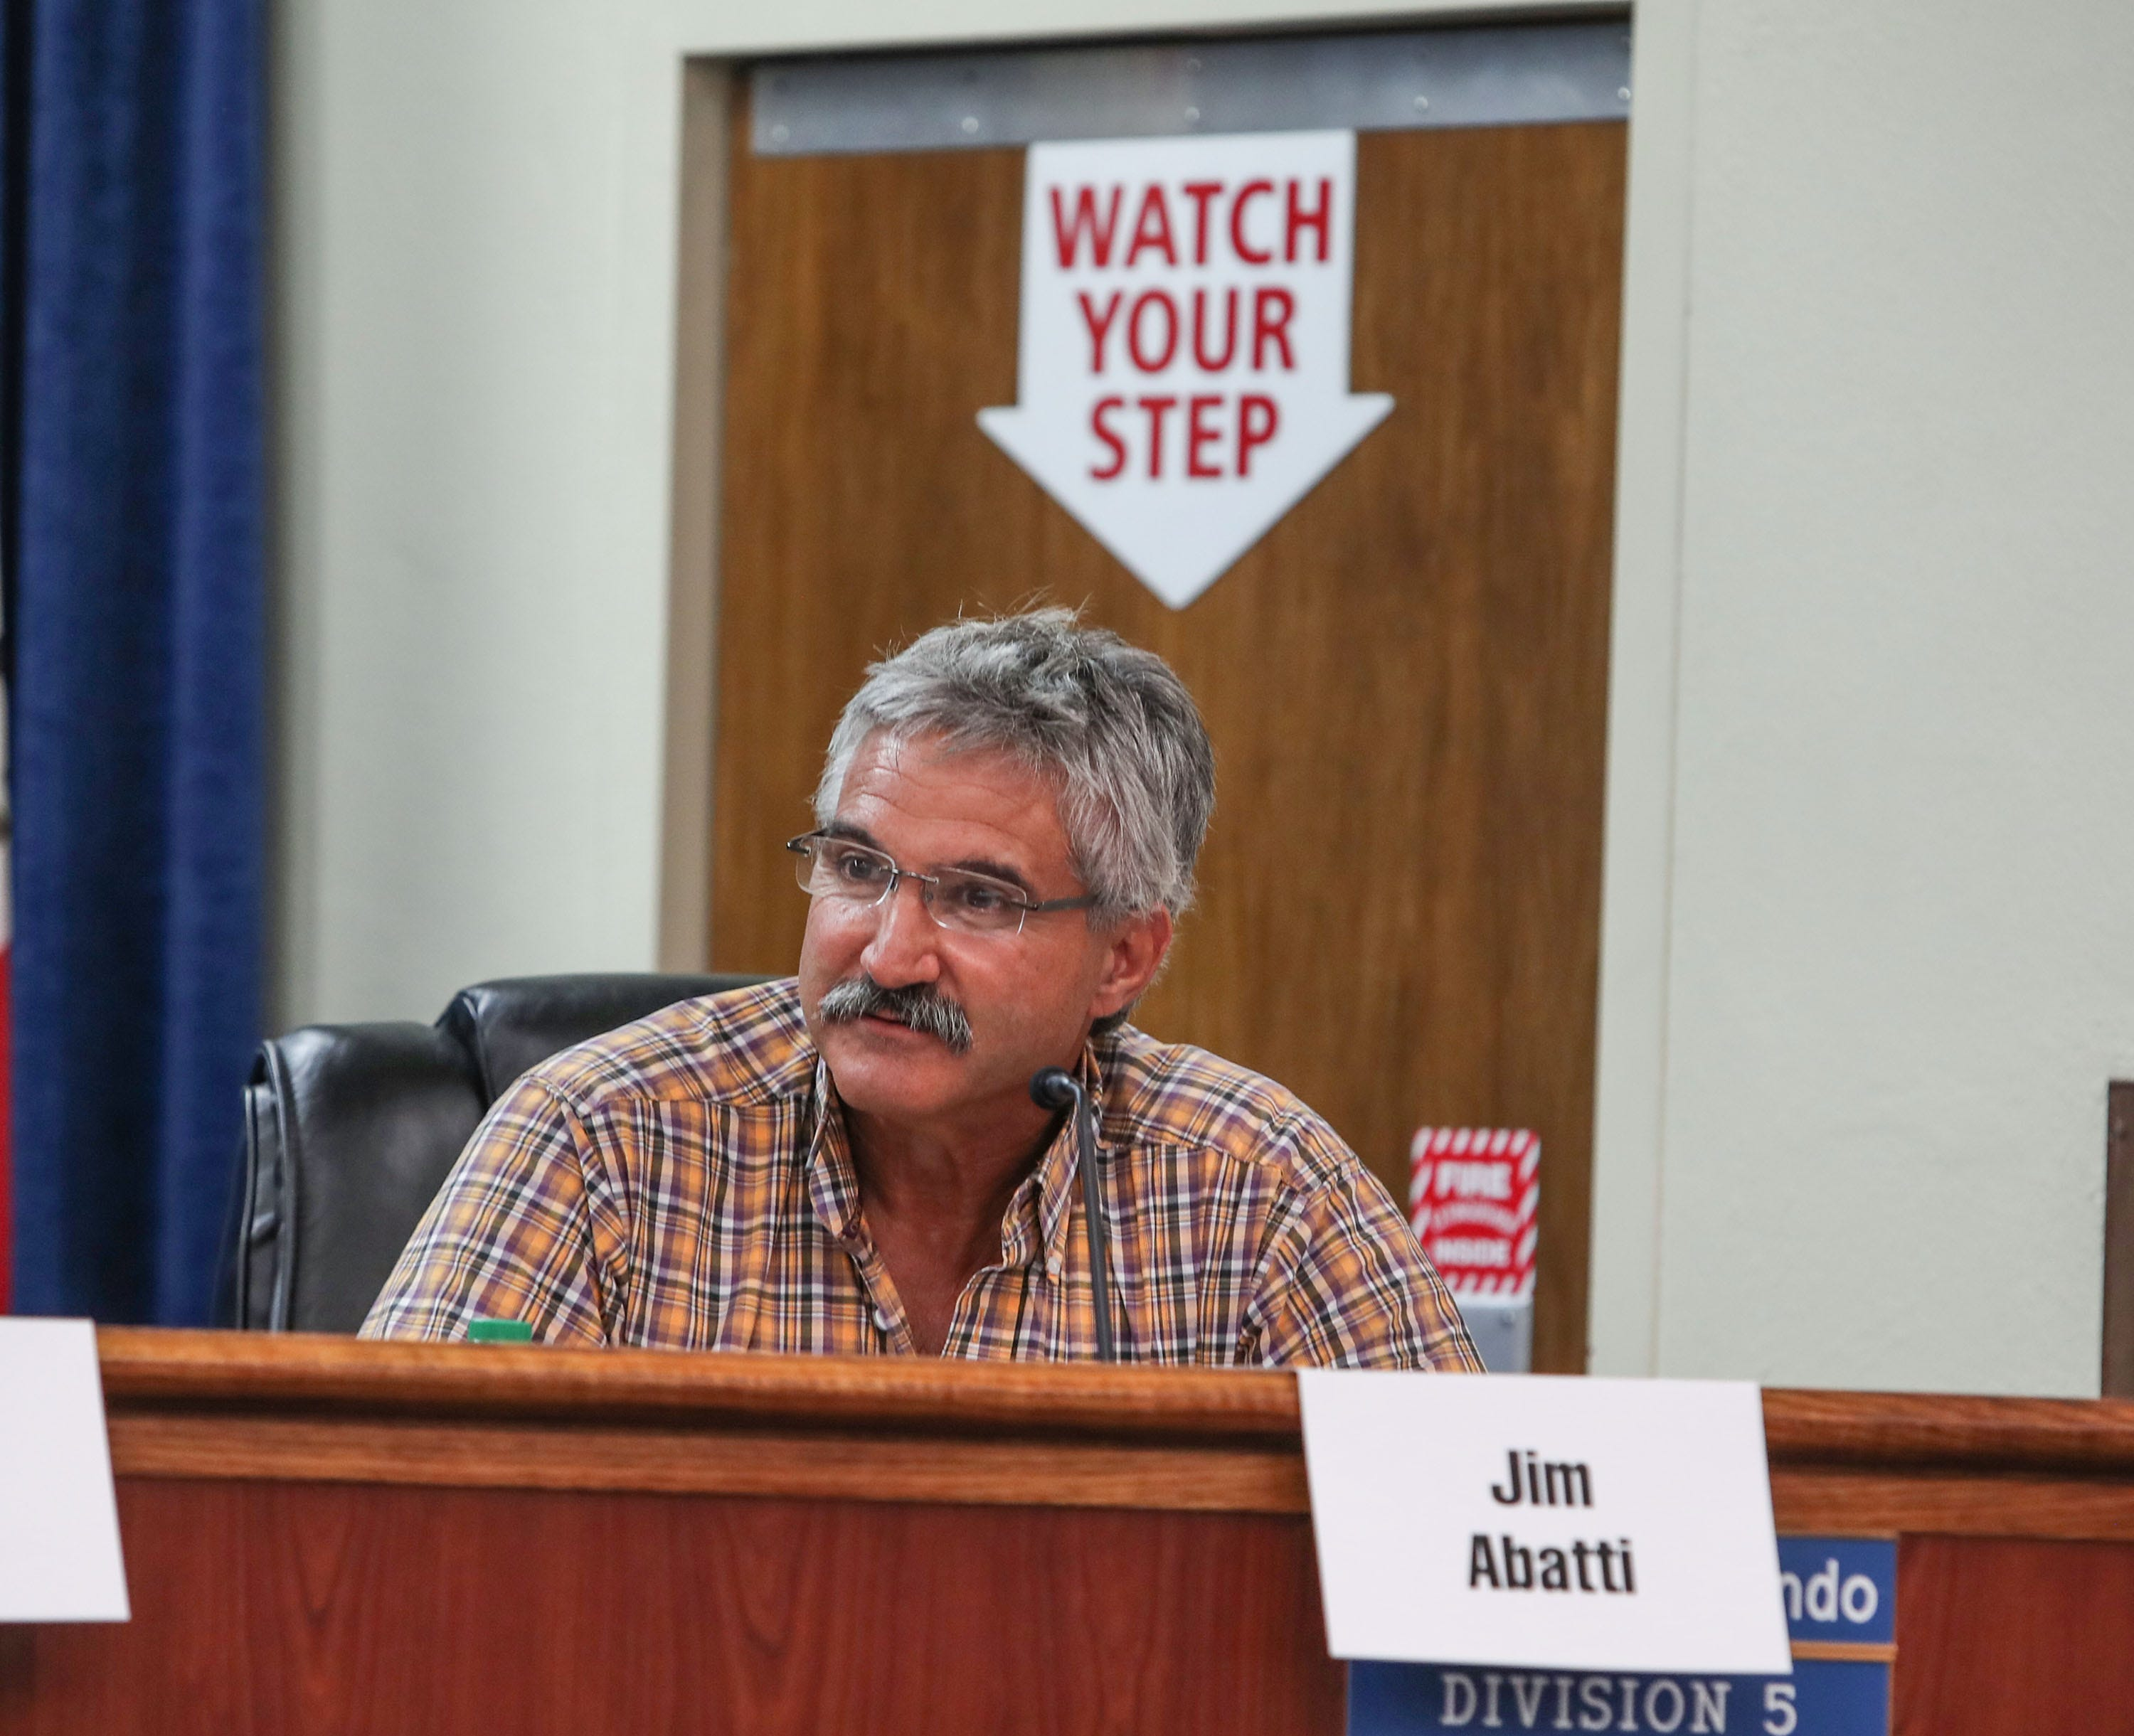 Jimmy Abatti attends a meeting of the Imperial Irrigation District's Water Conservation Advisory Board in El Centro on July 12, 2018. Abatti is a member of the advisory board.